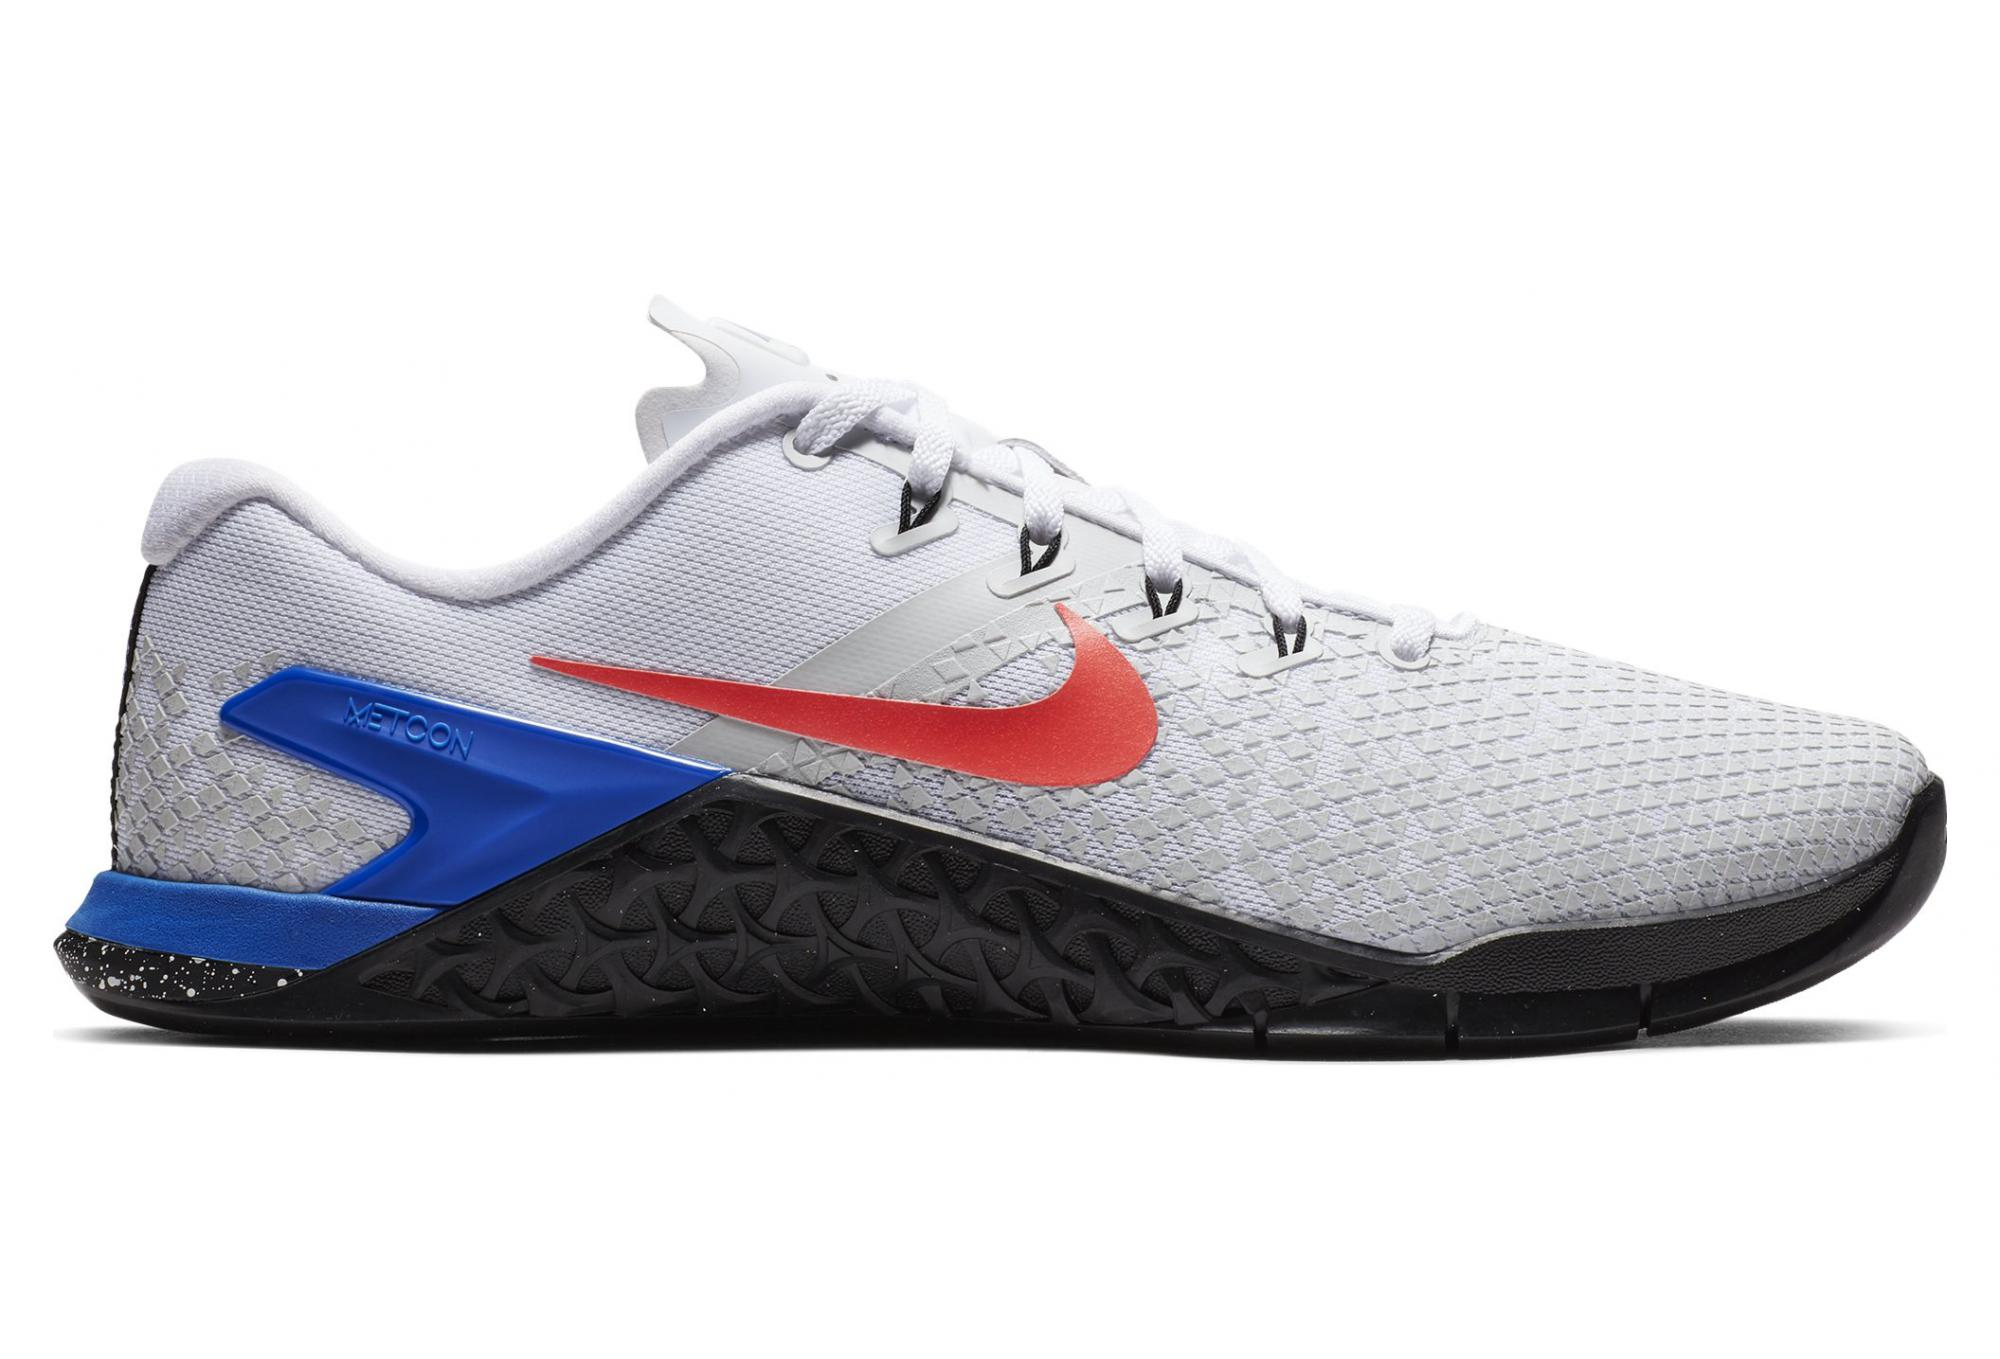 aab182146e97 Nike Metcon 4 XD White Men